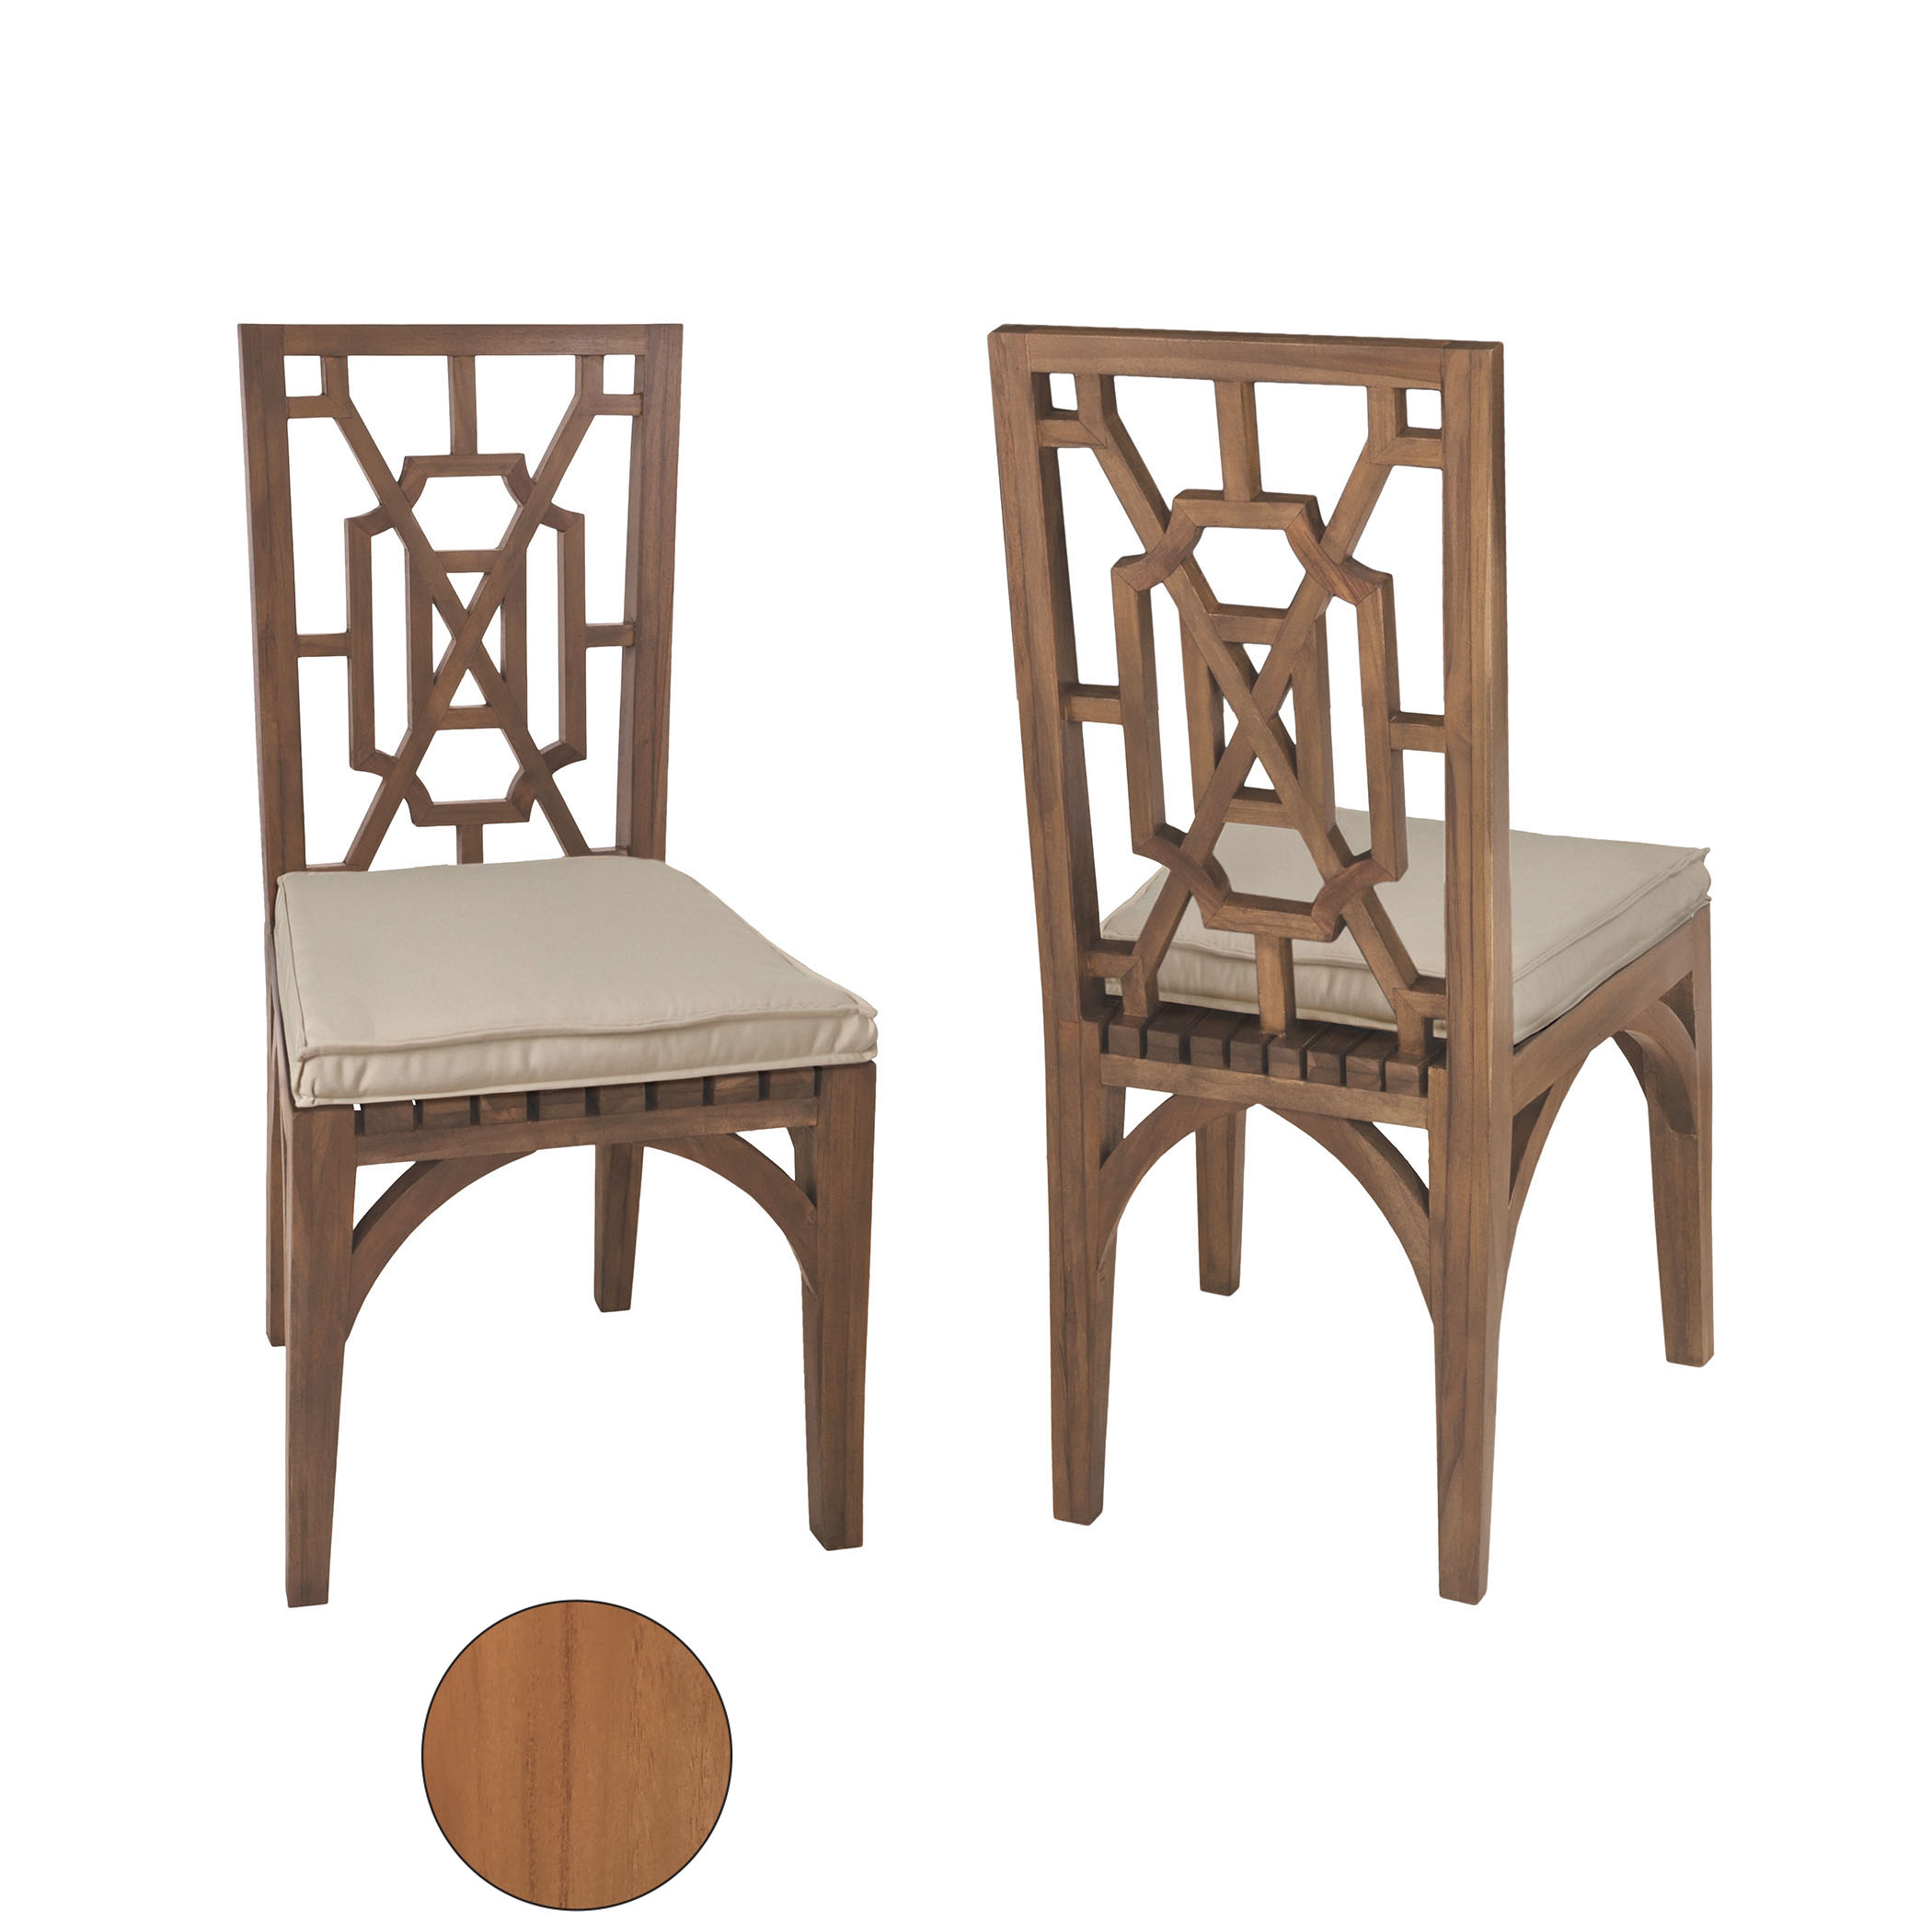 Teak Garden Dining Chairs in Euro Teak Oil Set of 2 | Elk Home